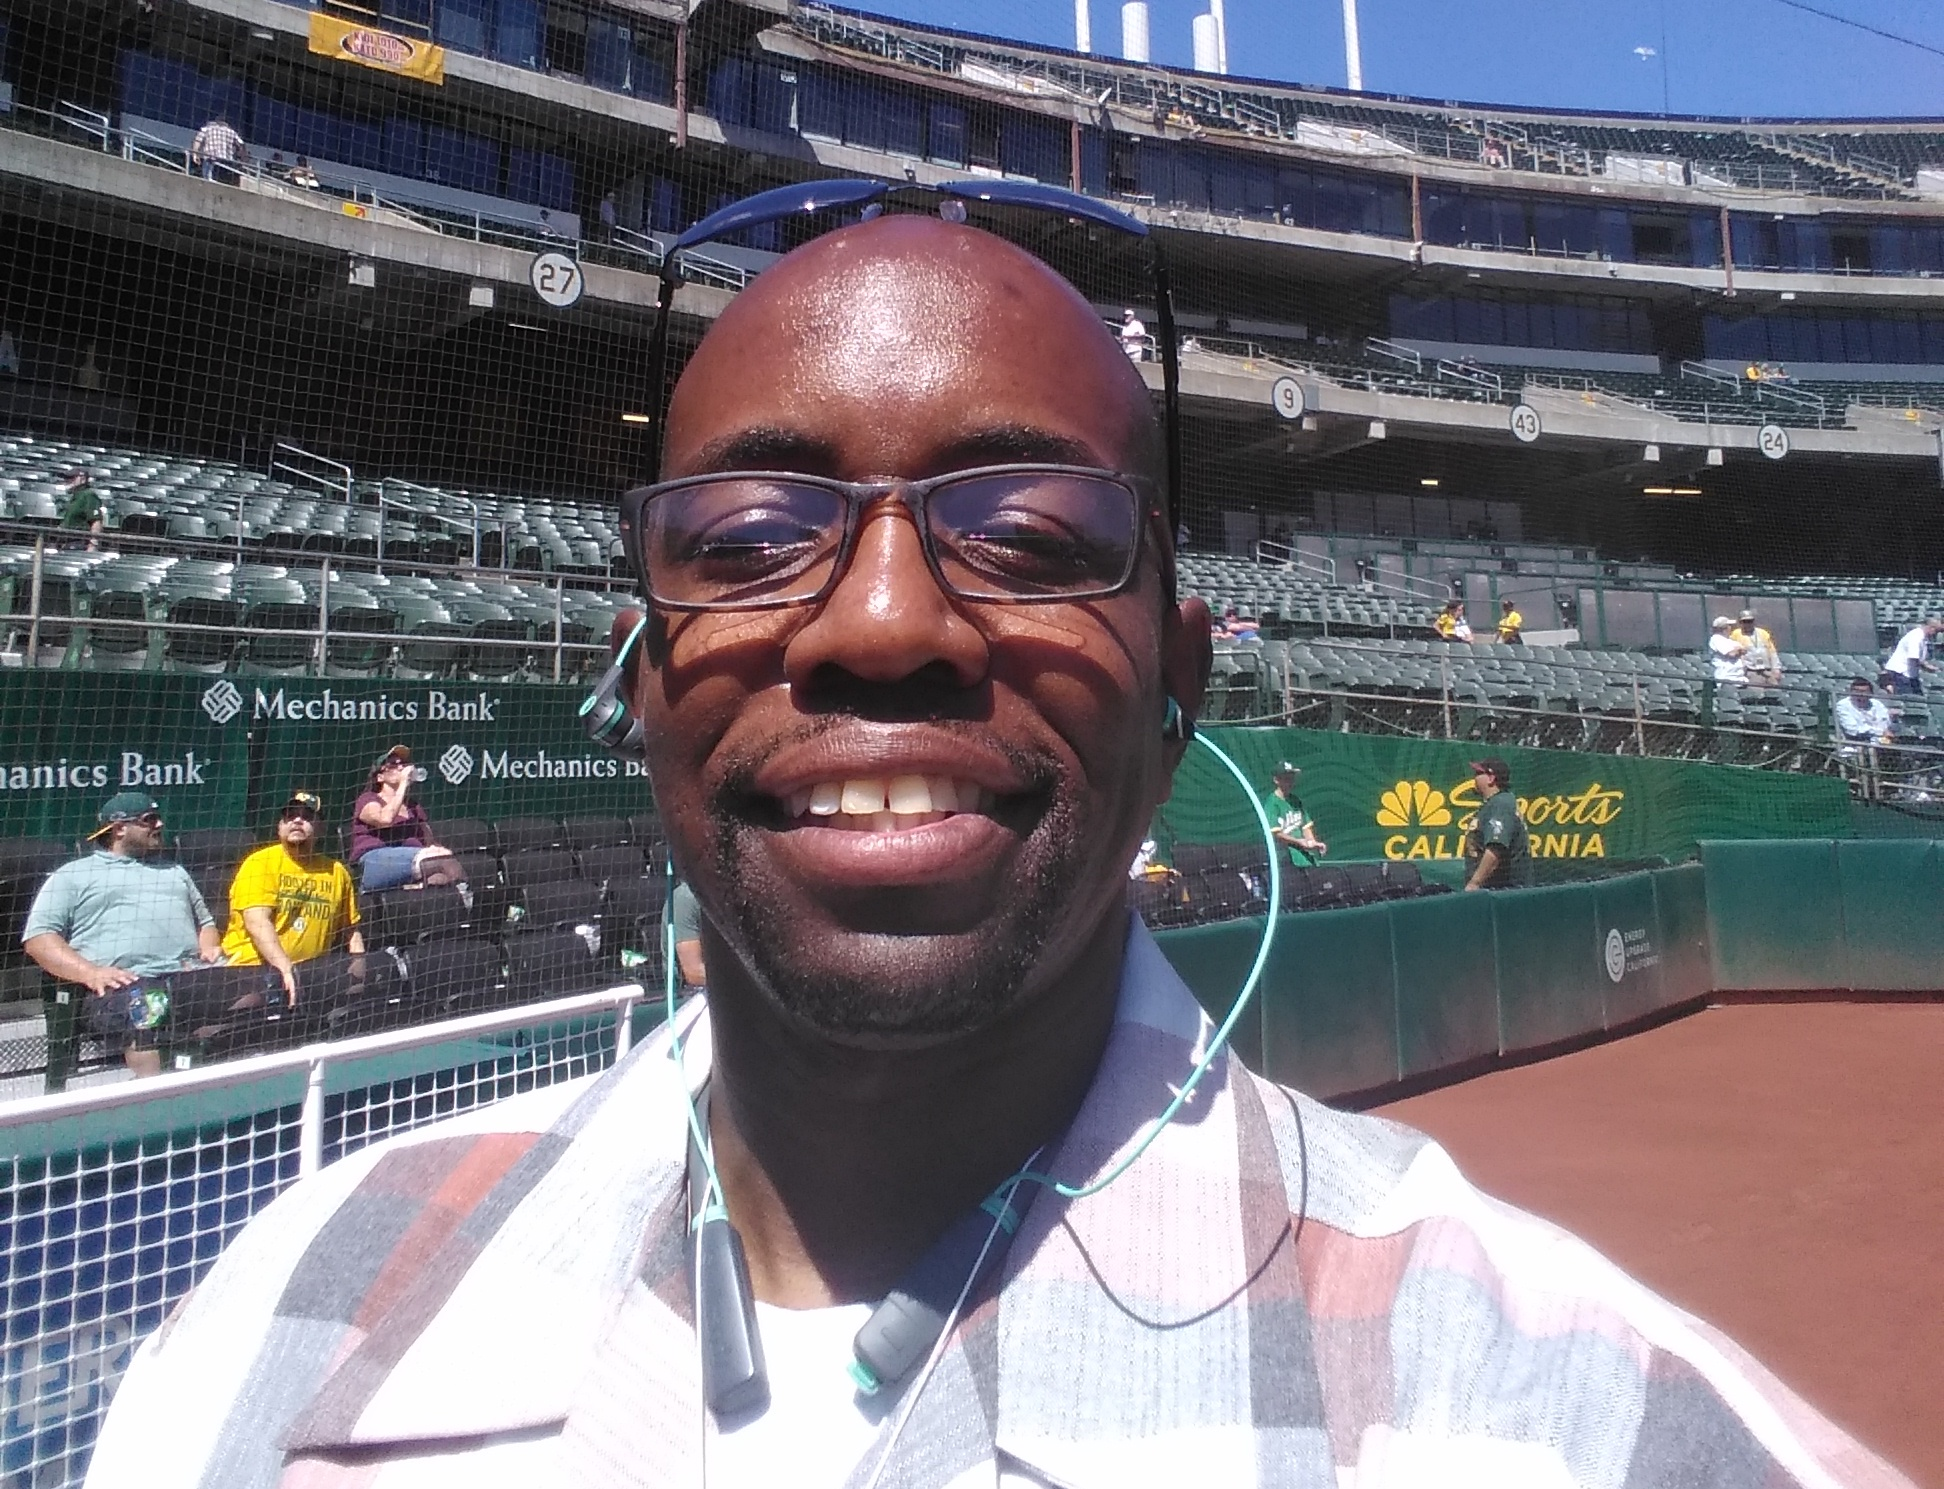 Black man with glasses wearing a checkered polo takes a selfie on the field of an empty baseball field on a sunny day